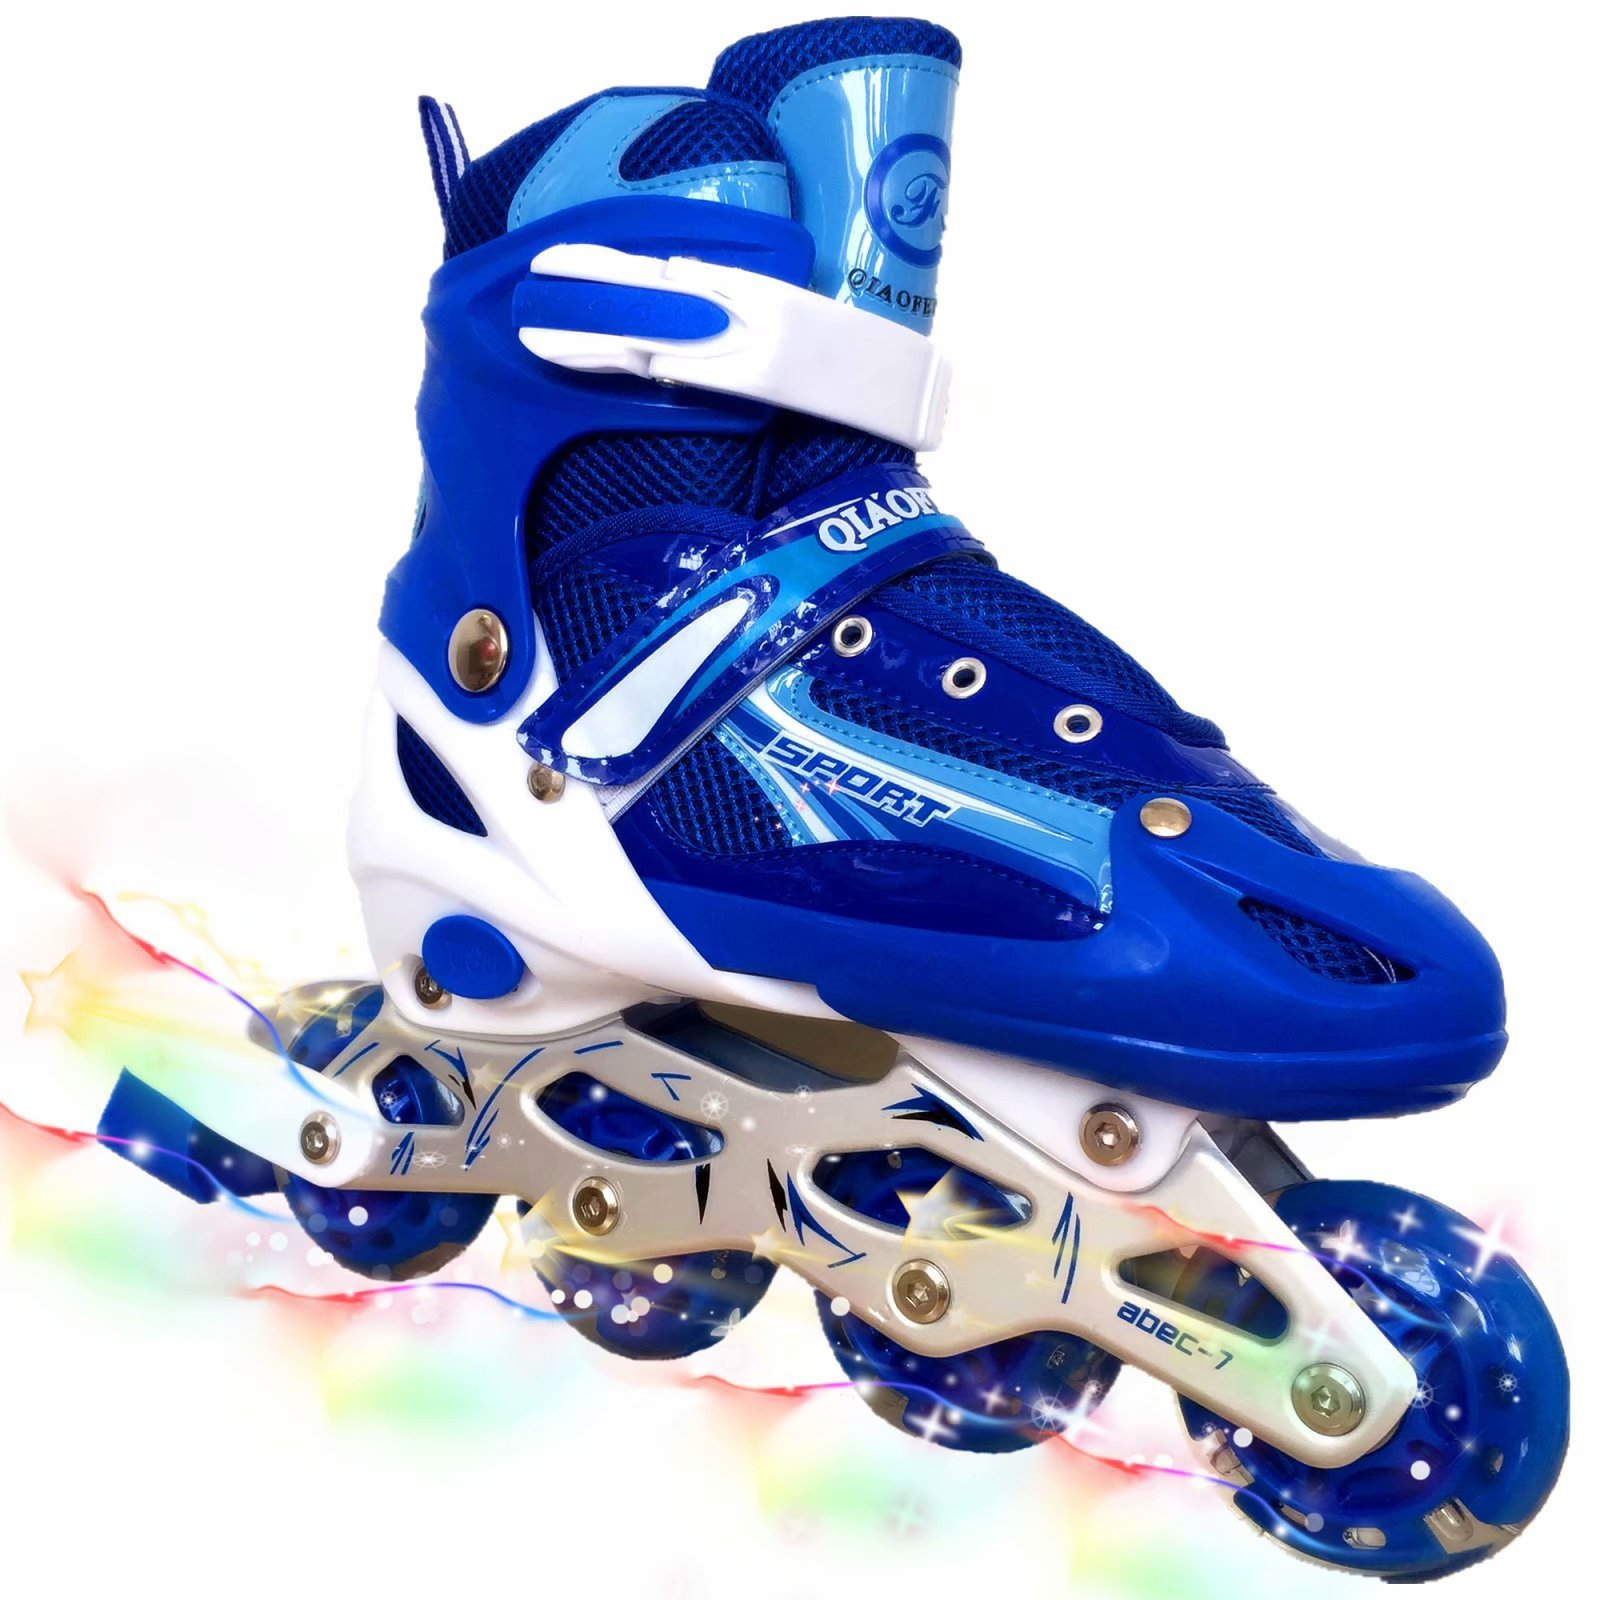 you-beat-you-land Children Adjustable Inline Skates Kids Rollerblades For Boys And Girls With Light Up Wheel-Blue M by you-beat-you-land